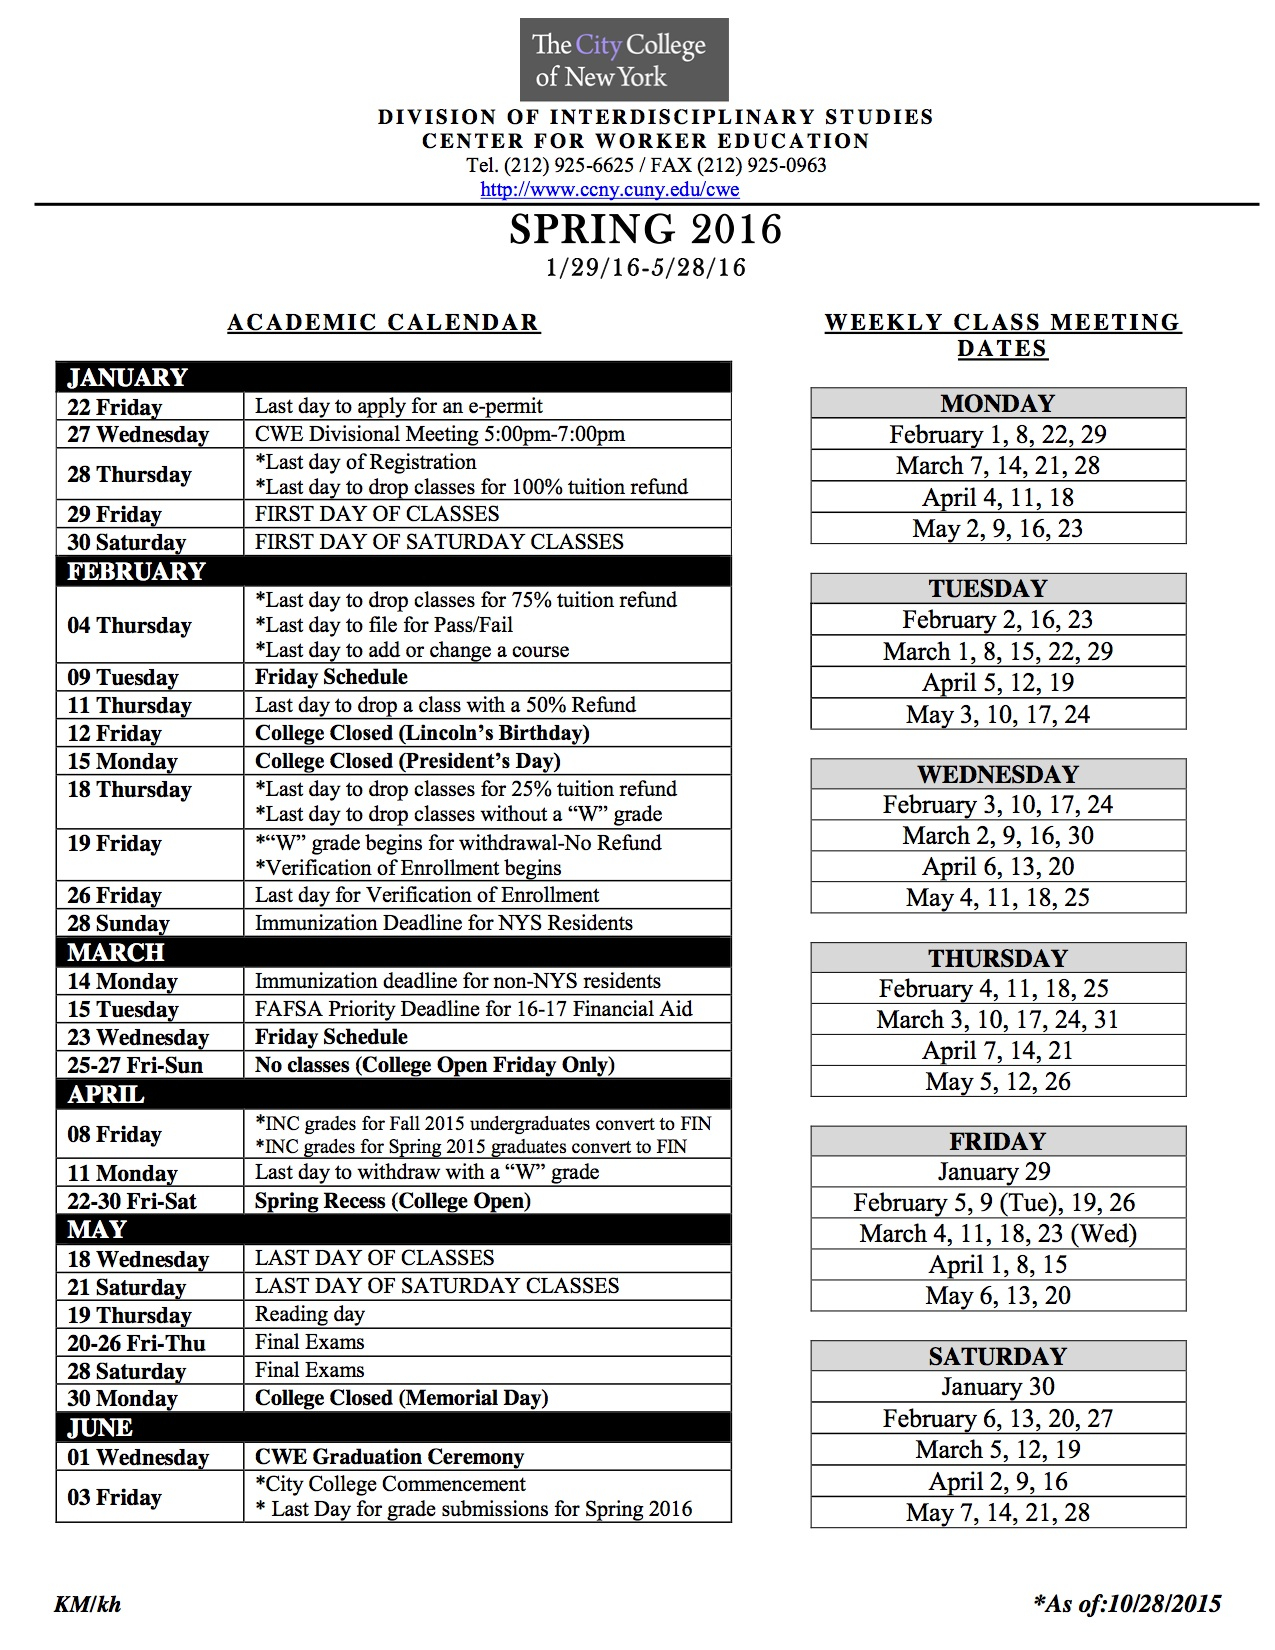 Academic Calendar | The City College Of New York intended for Queensboro Community College Calendar